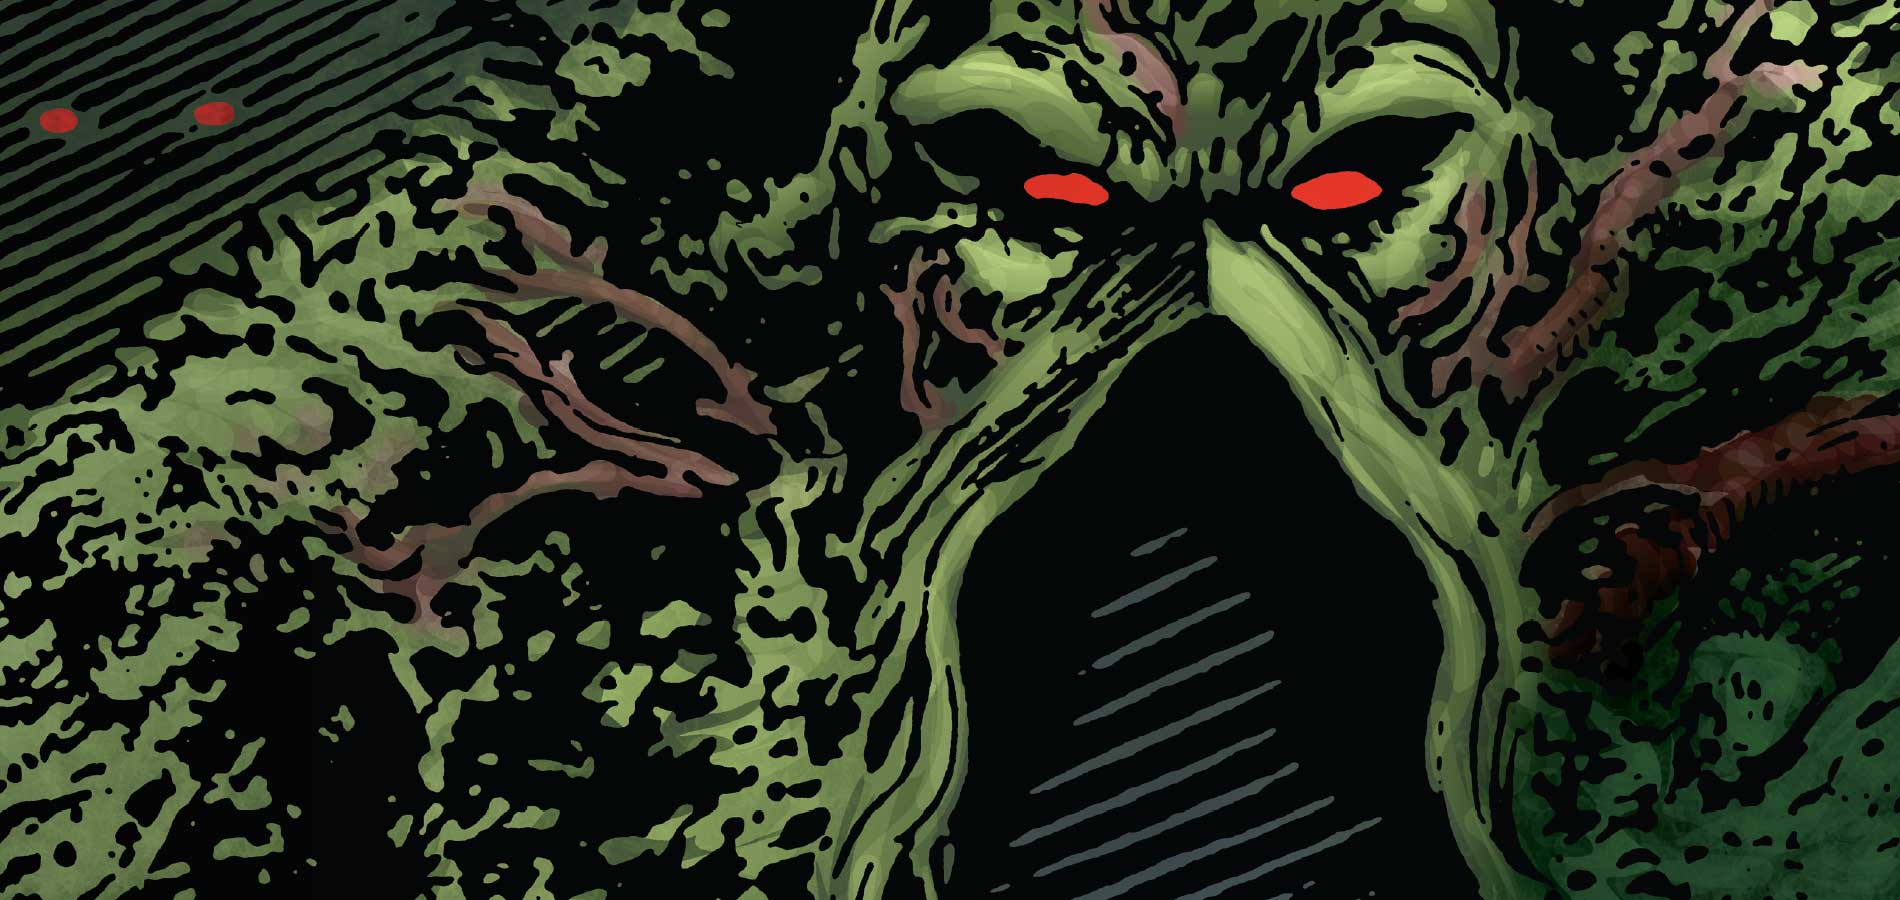 High Resolution Wallpaper | Swamp Thing 1900x900 px